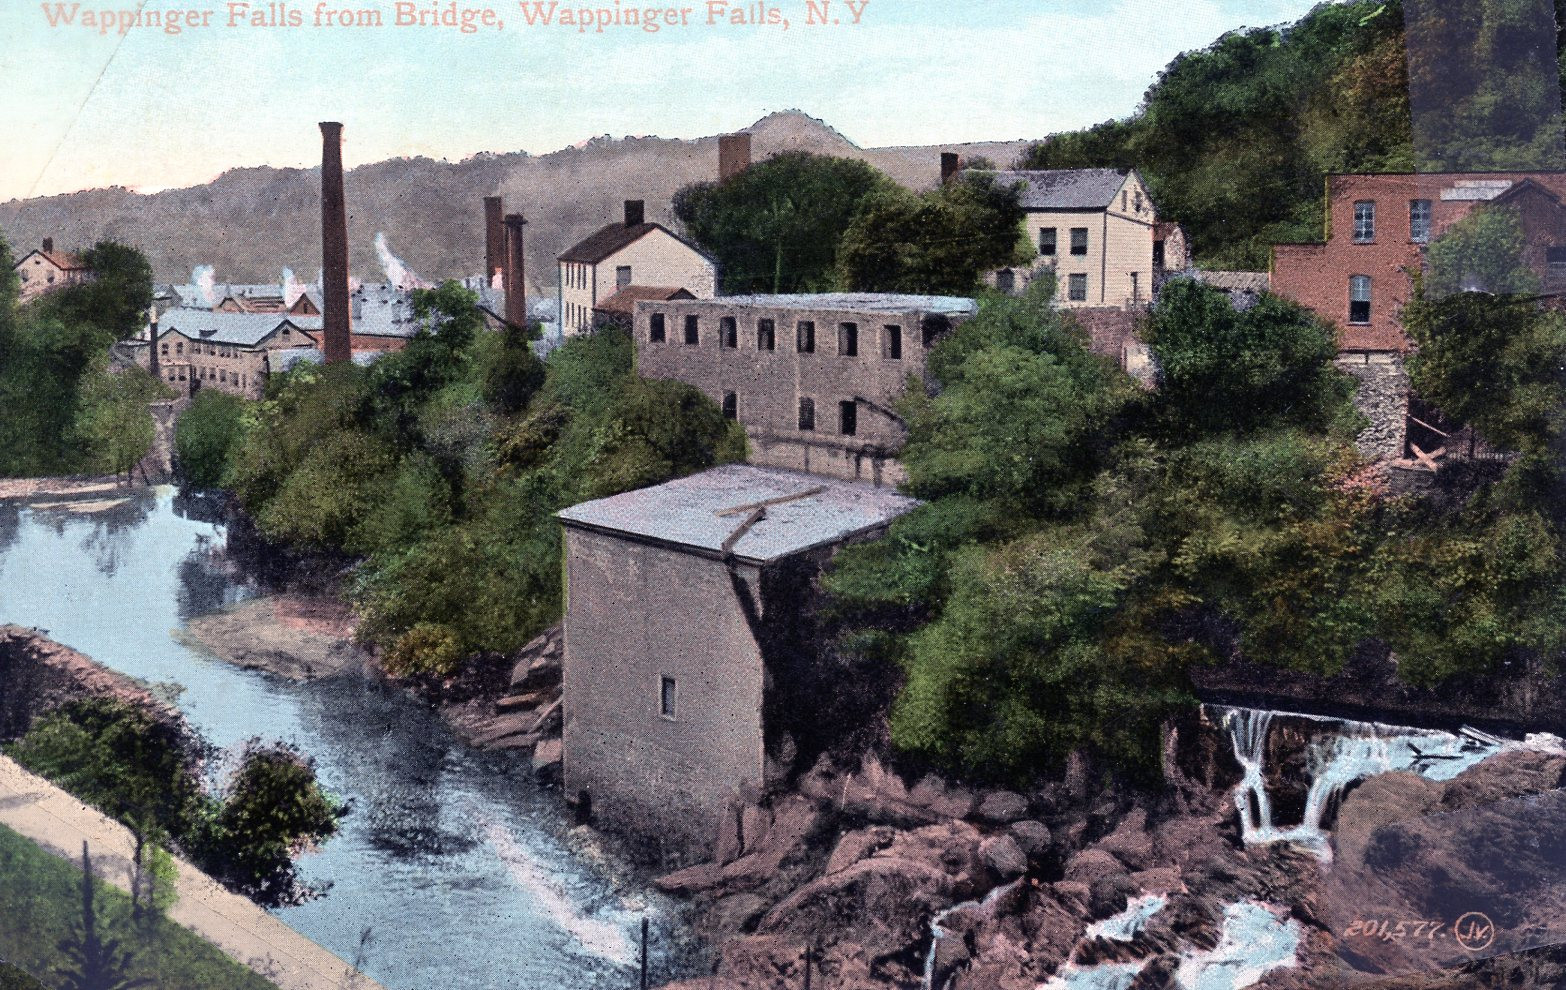 Wappingers Falls from Bridge